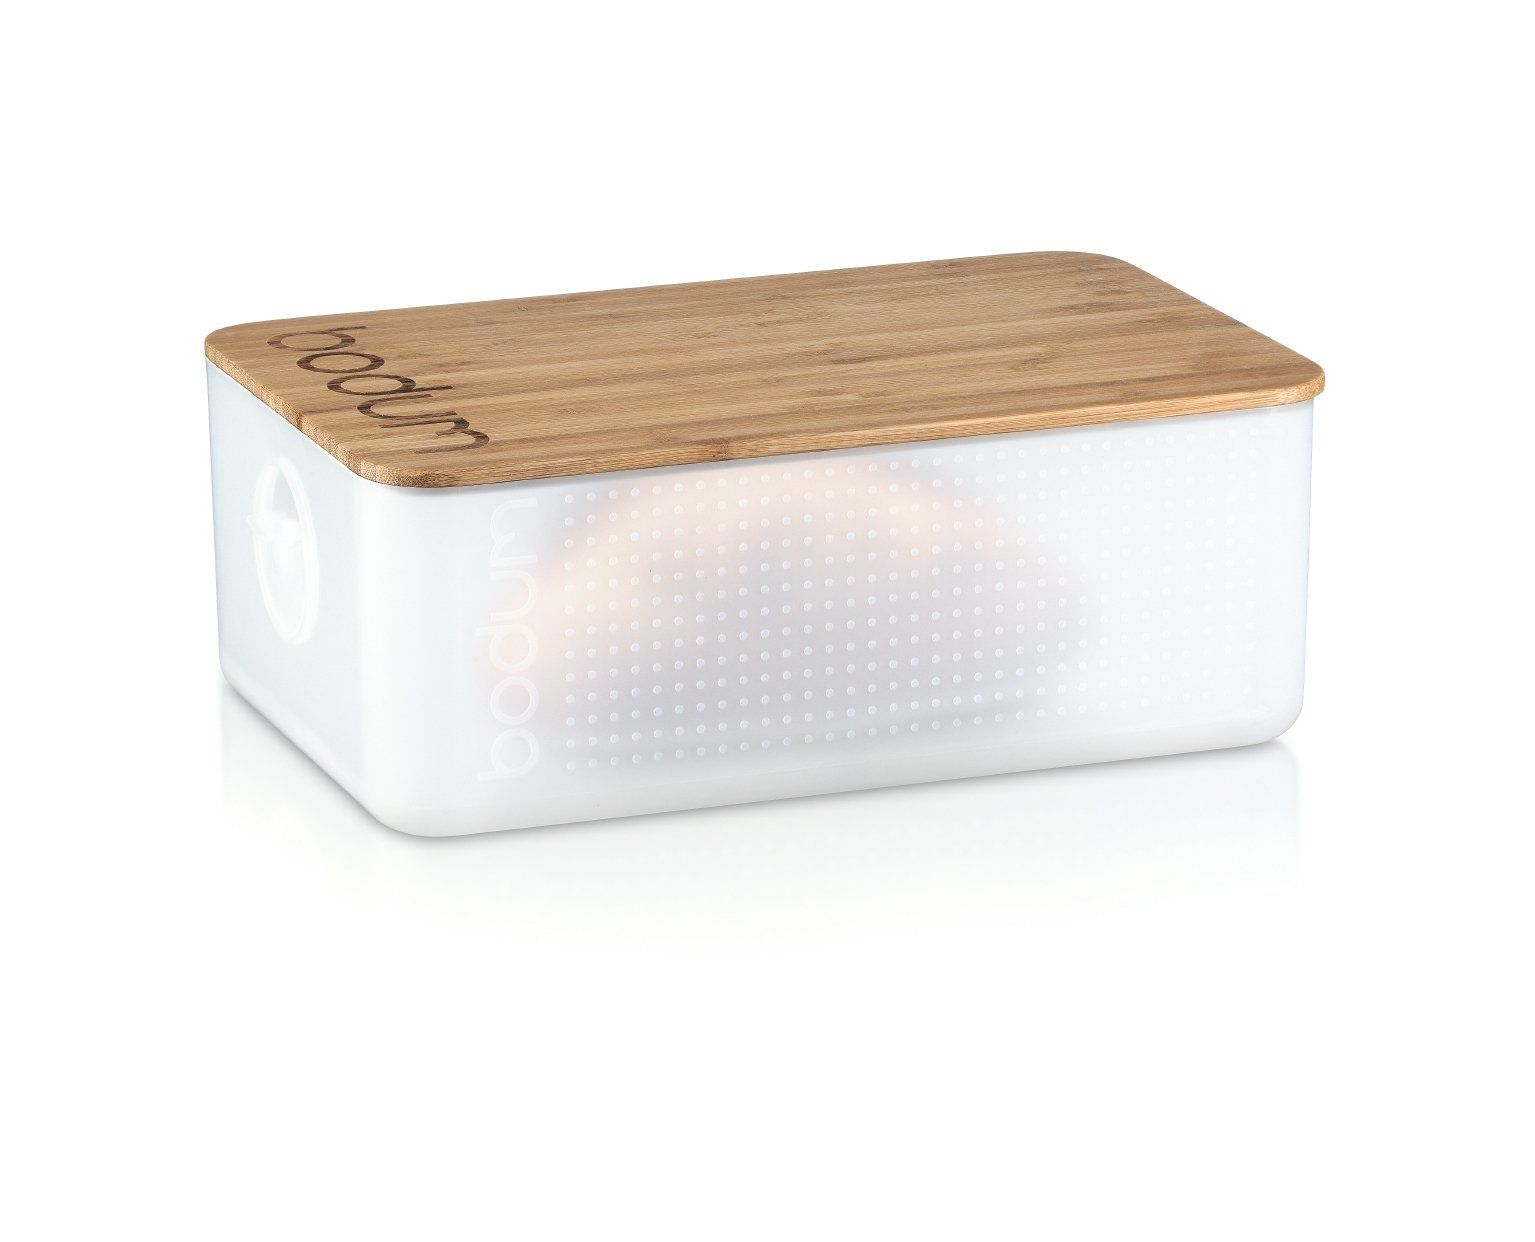 Bread Boxes Bed Bath And Beyond Cool Bodum Bistro Bread Box Bread Bin Bread Container With Lid As Design Decoration